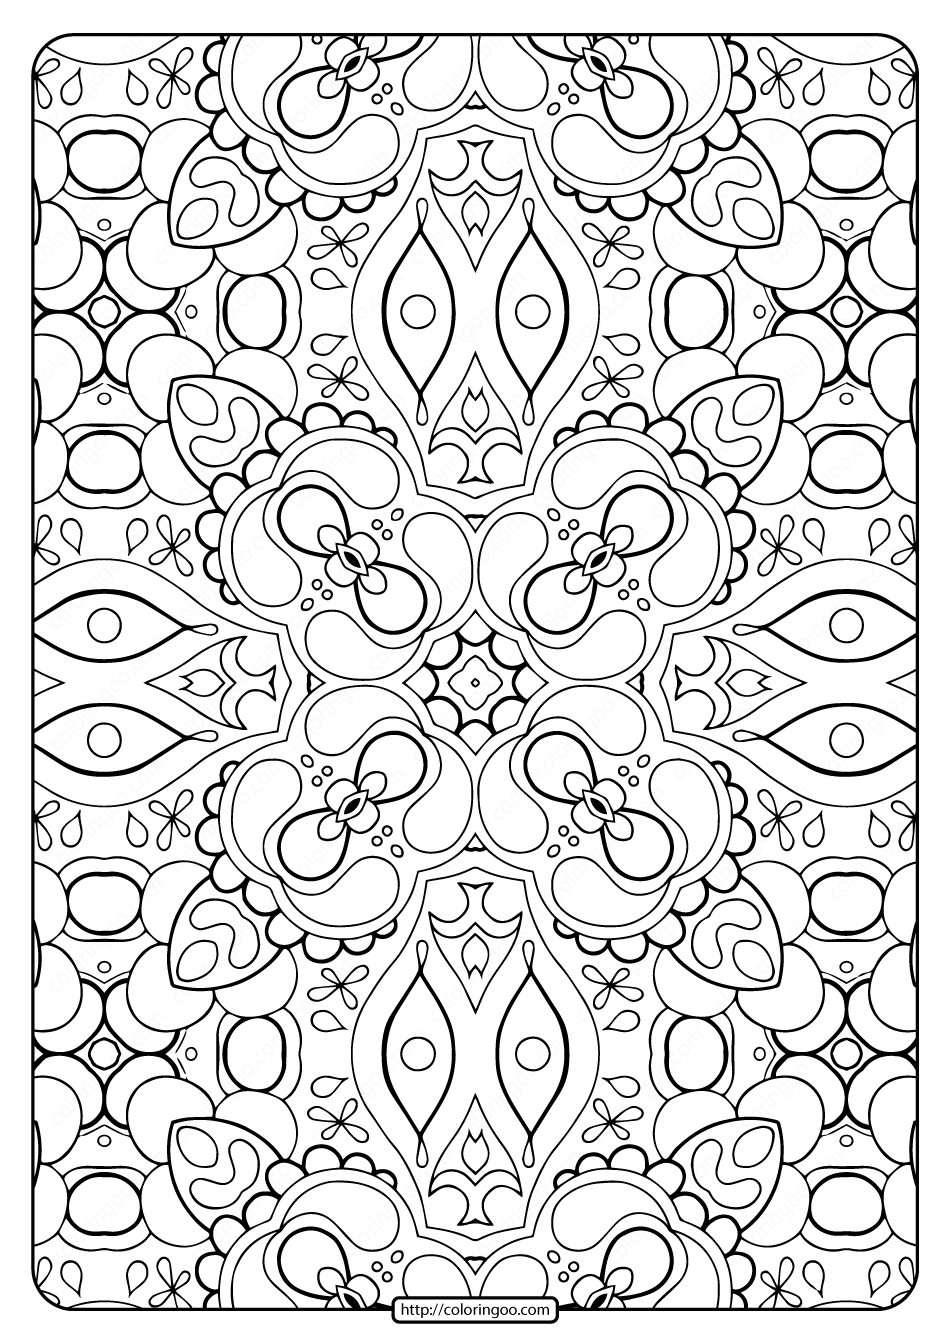 coloring patterns try piy print it yourself patterns for some cool patterns coloring